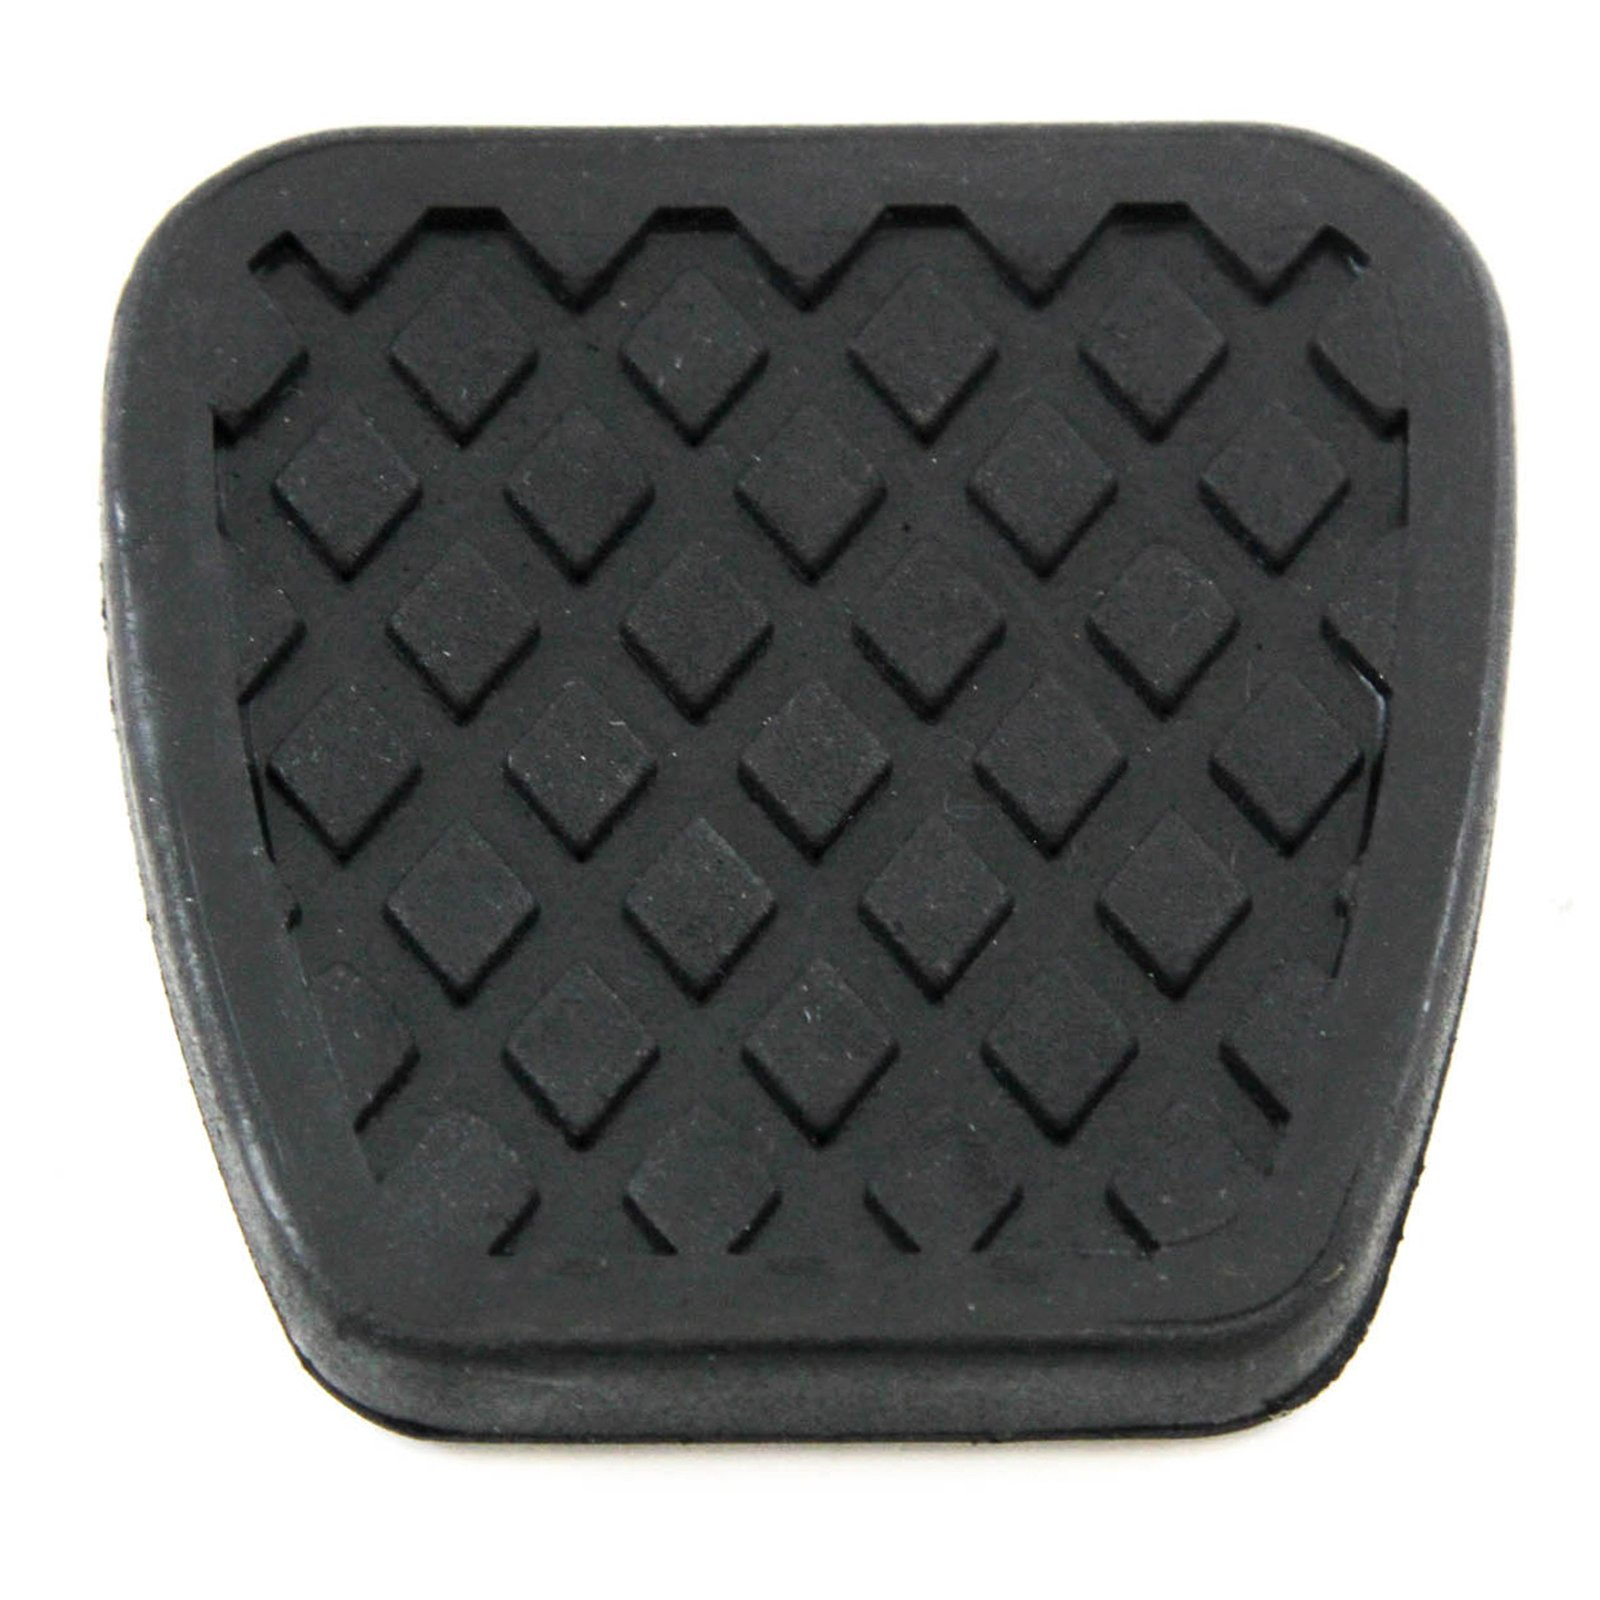 Red Hound Auto Brake Clutch Pad Cover for Honda Pedal Rubber Replacement for Manual Transmission